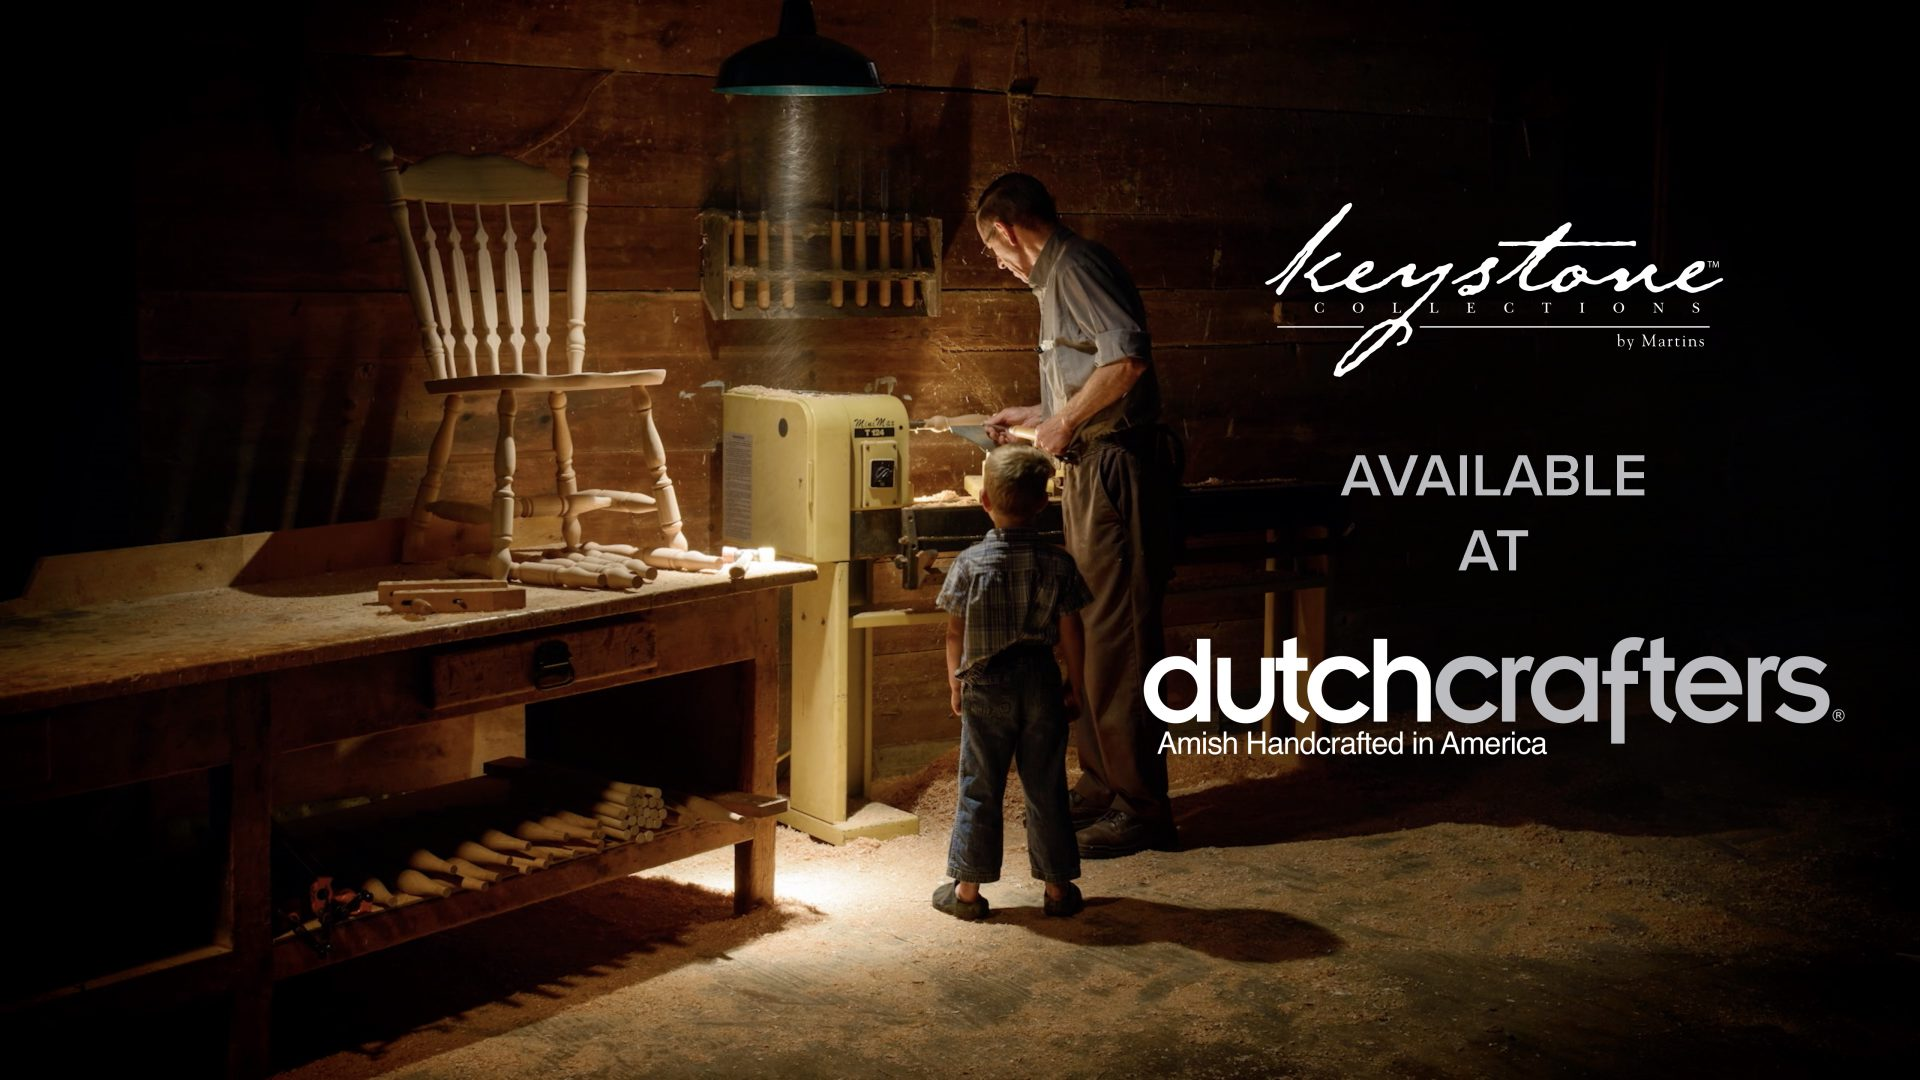 Keystone Collections DutchCrafters